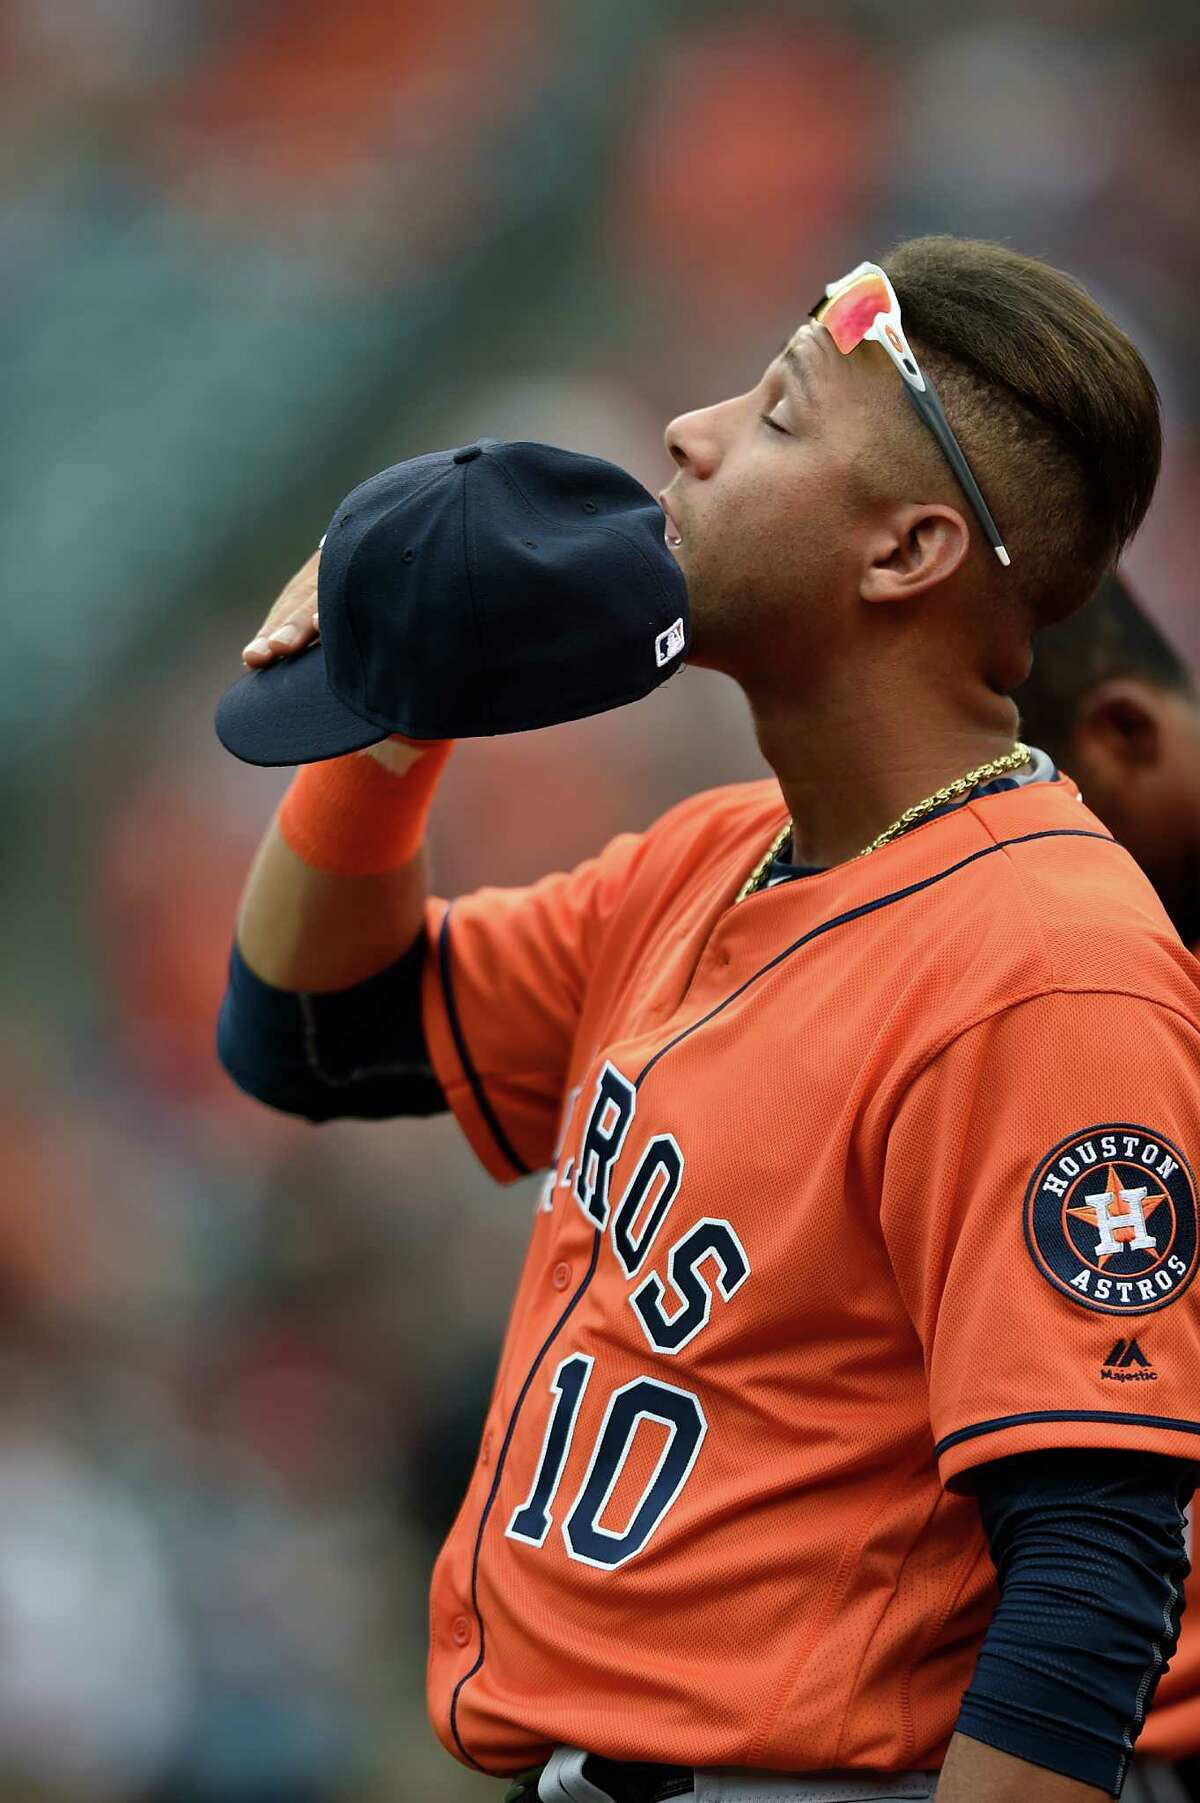 Houston Astros Yulieski Gurriel closes his eyes during the National Anthem before playing the Baltimore Orioles in a baseball game, Sunday, Aug. 21, 2016, in Baltimore. (AP Photo/Gail Burton)